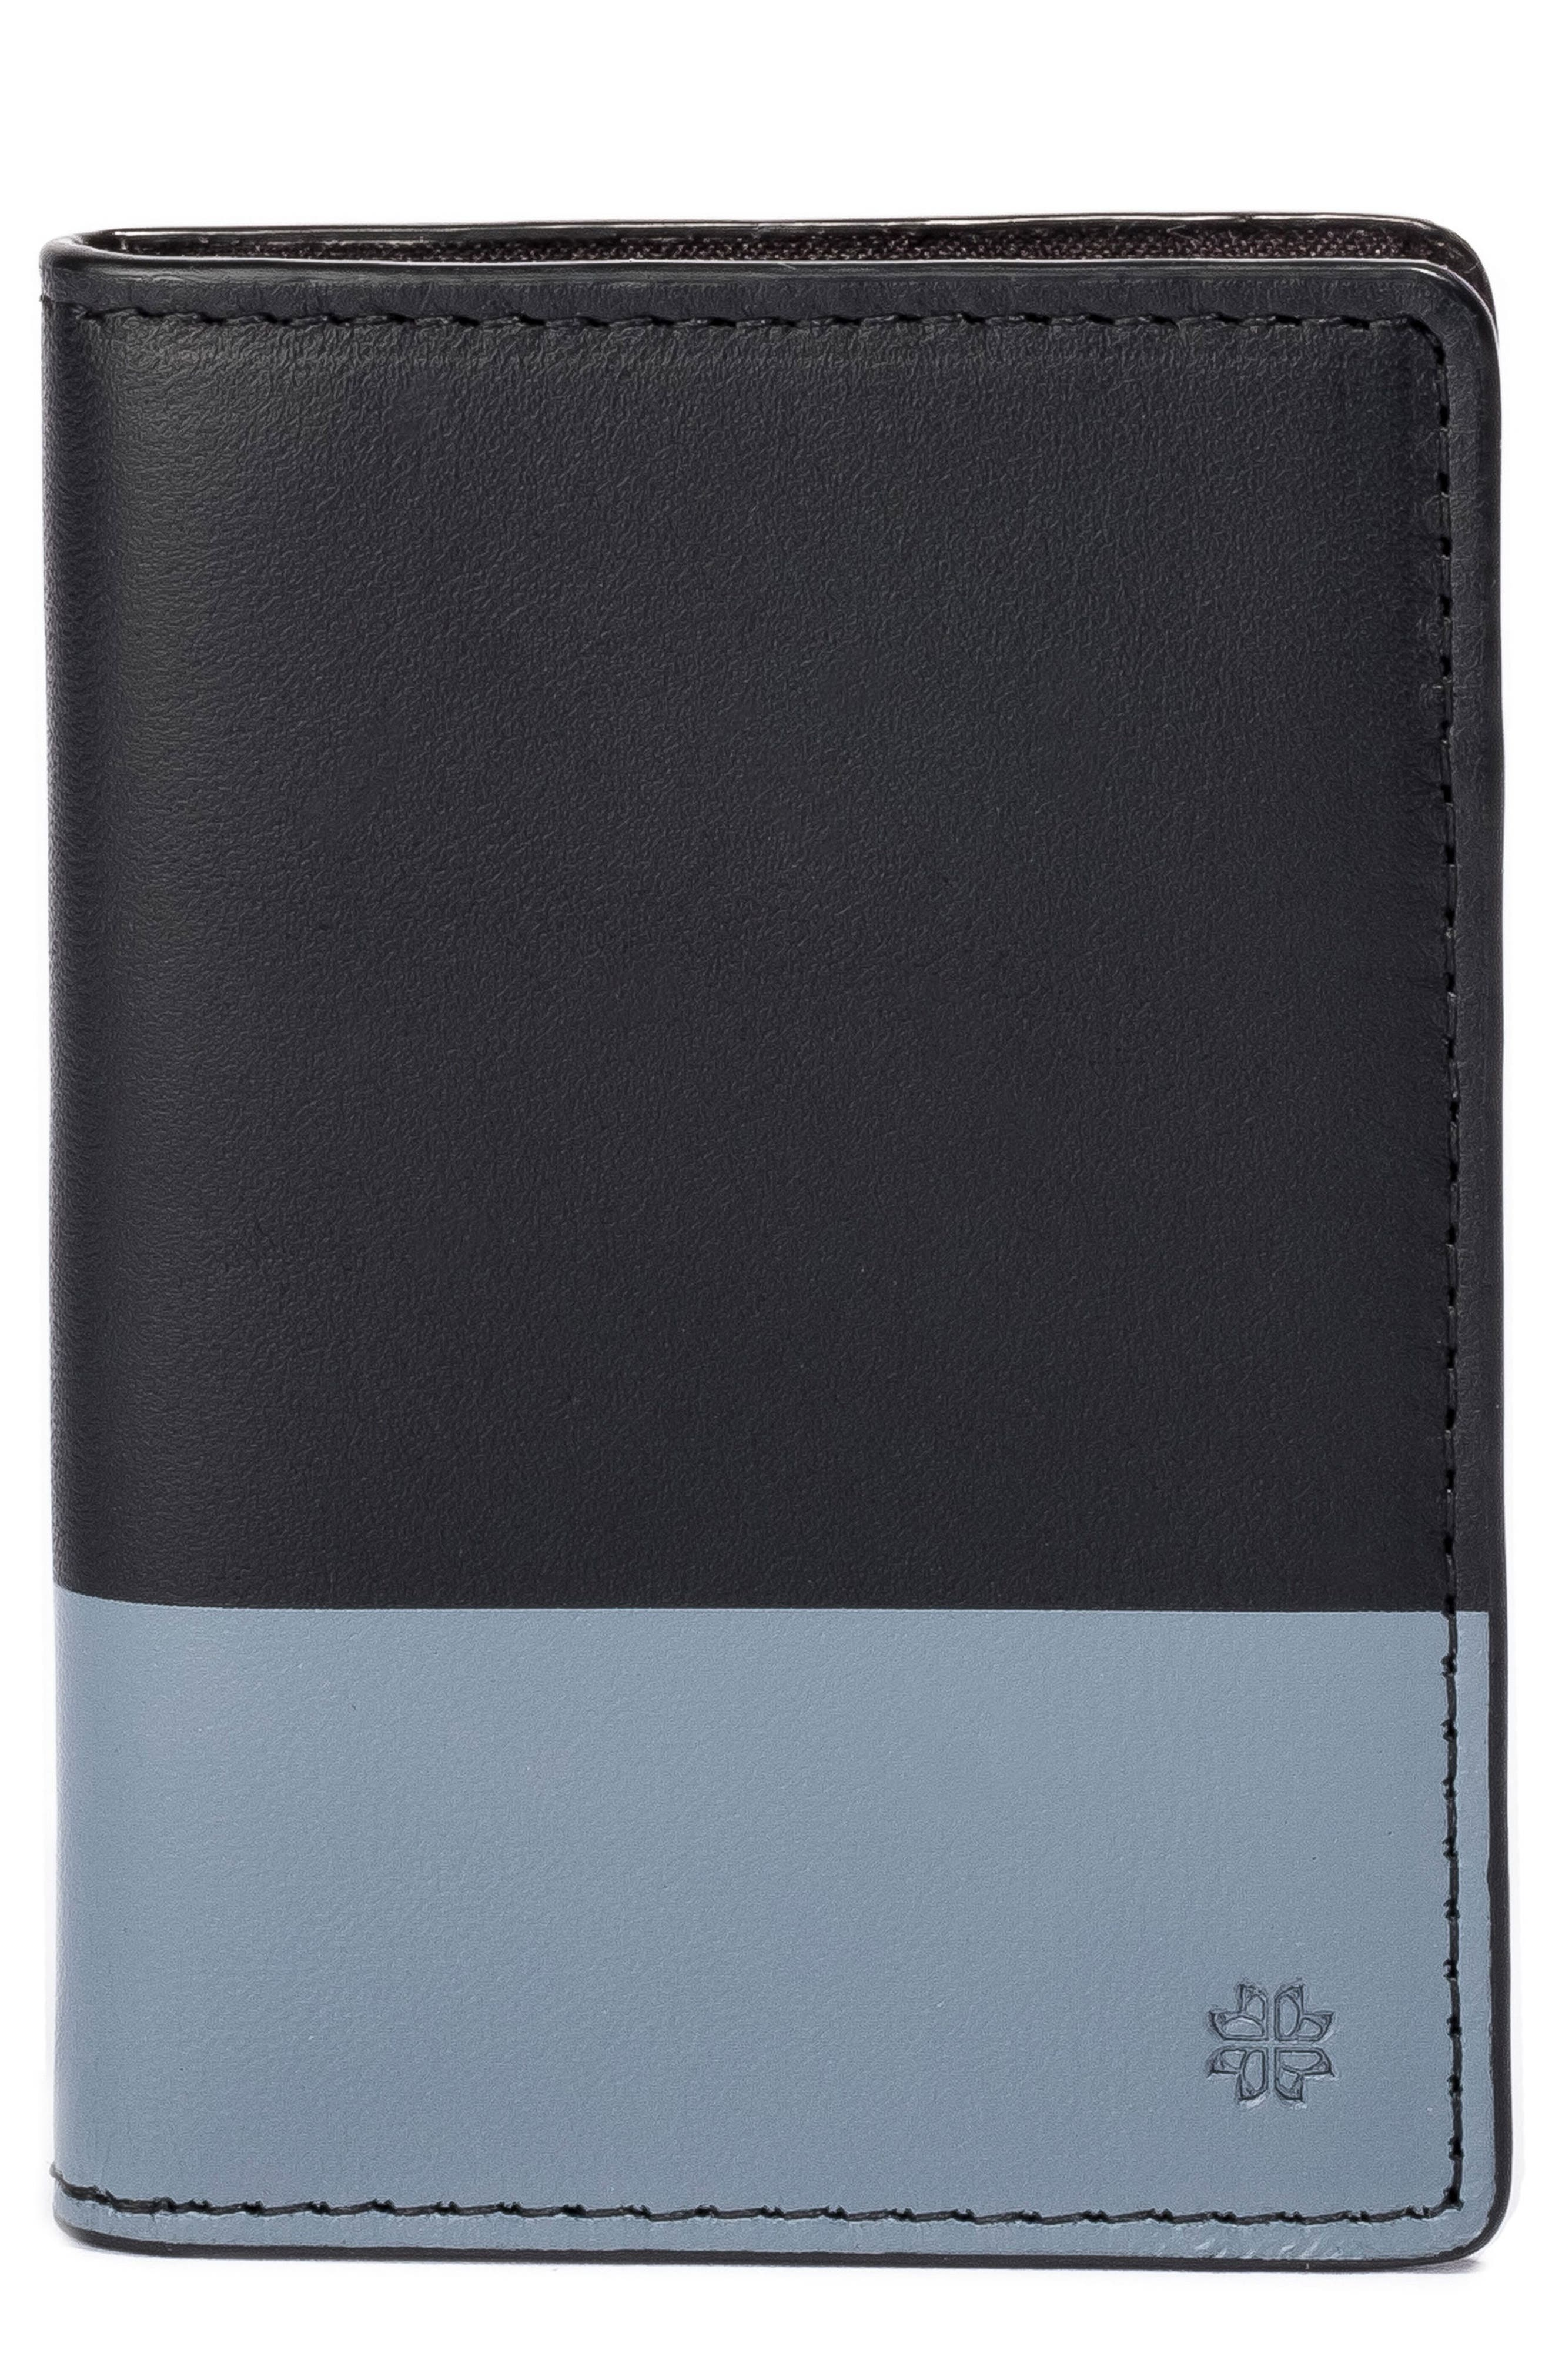 Leather Wallet,                             Main thumbnail 1, color,                             Grey